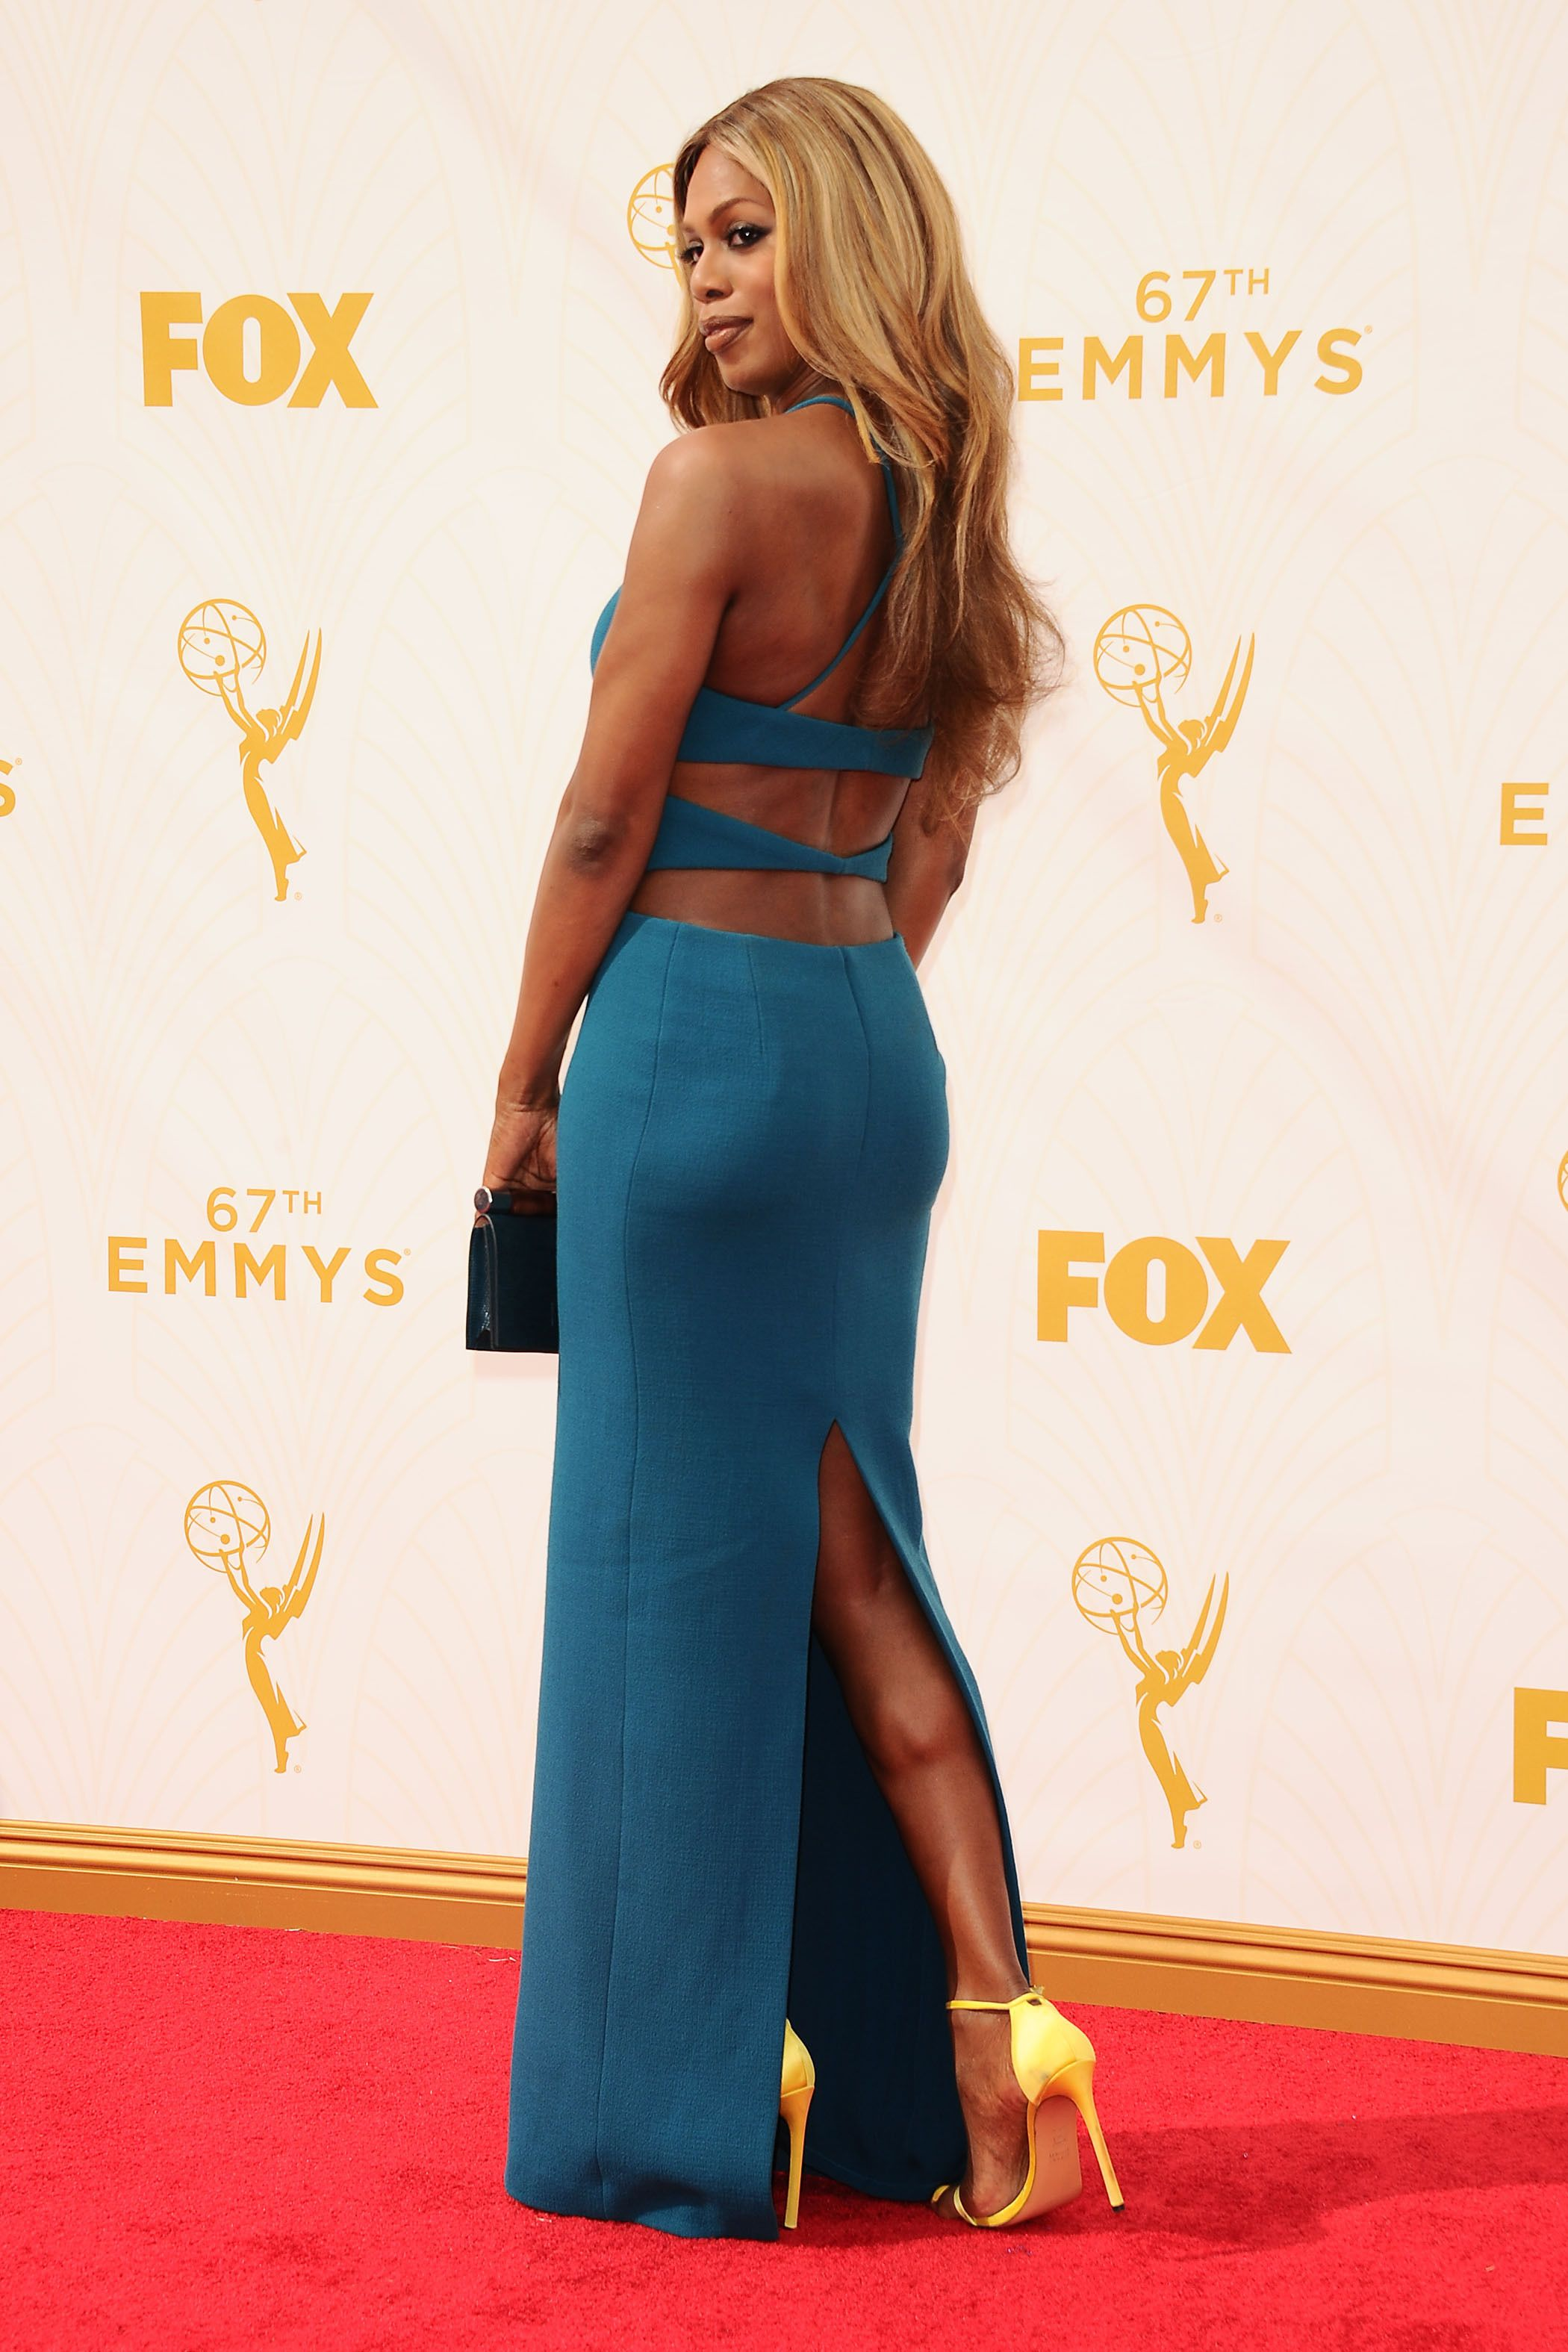 Laverne Cox | LAVERNE COX | Pinterest | Leopard shoes, Celebrity ...